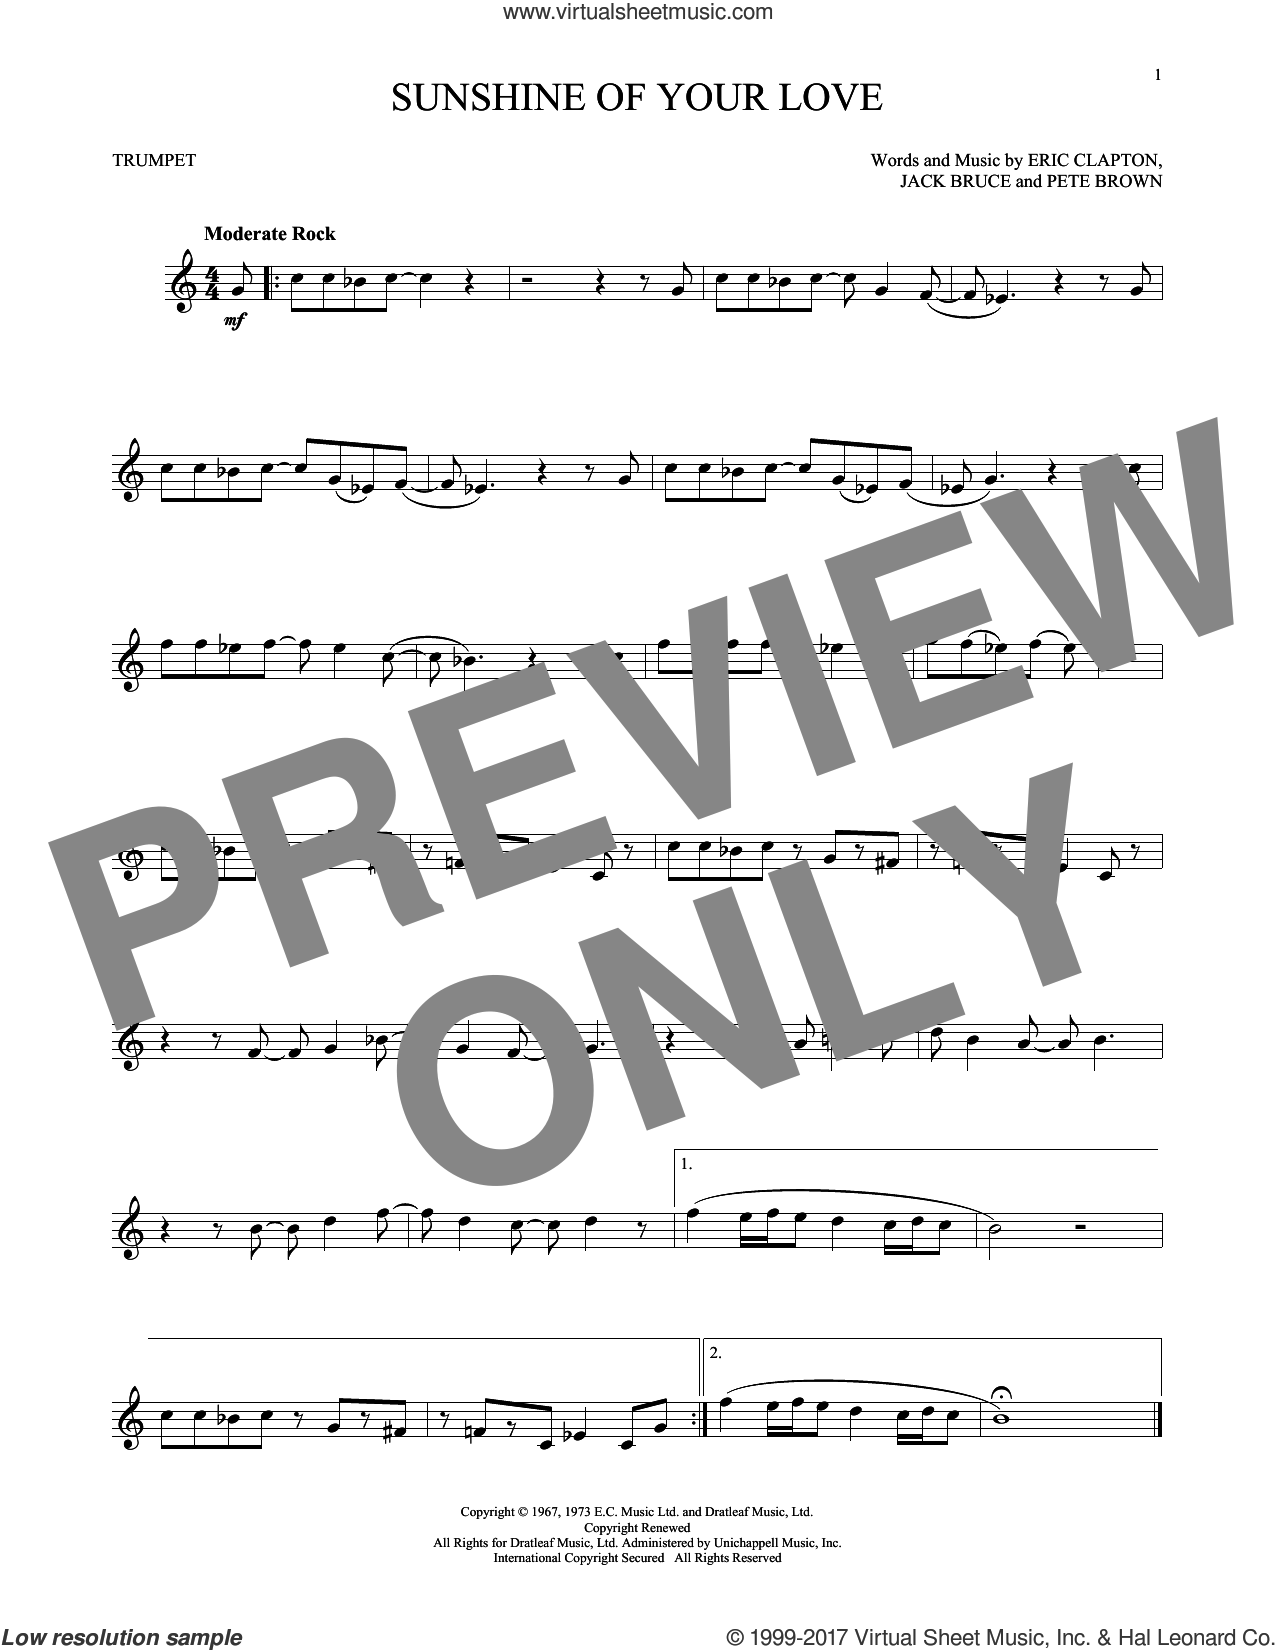 Sunshine Of Your Love sheet music for trumpet solo by Cream, Eric Clapton, Jack Bruce and Pete Brown, intermediate skill level